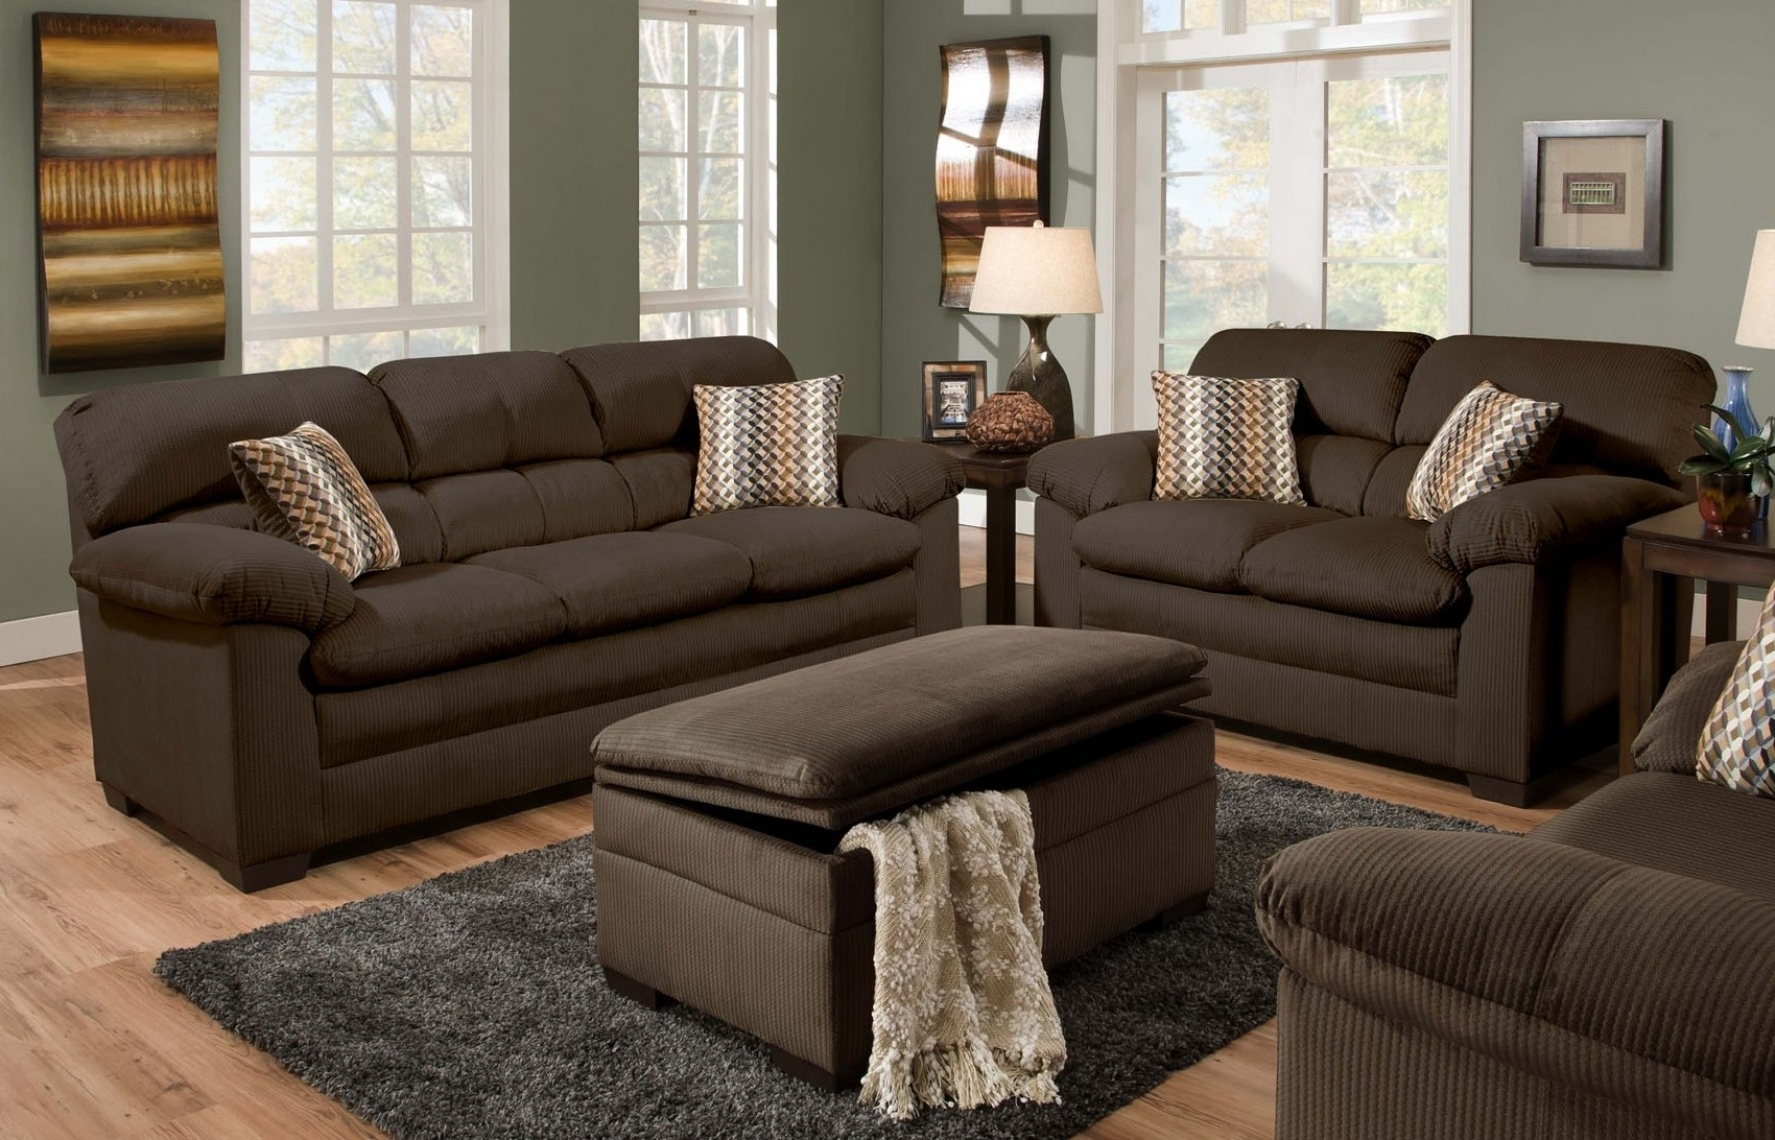 Famous Cappuccino Sectional Sofa Set Having Pillow Arms Details Also For Sofas With Ottoman (View 4 of 20)